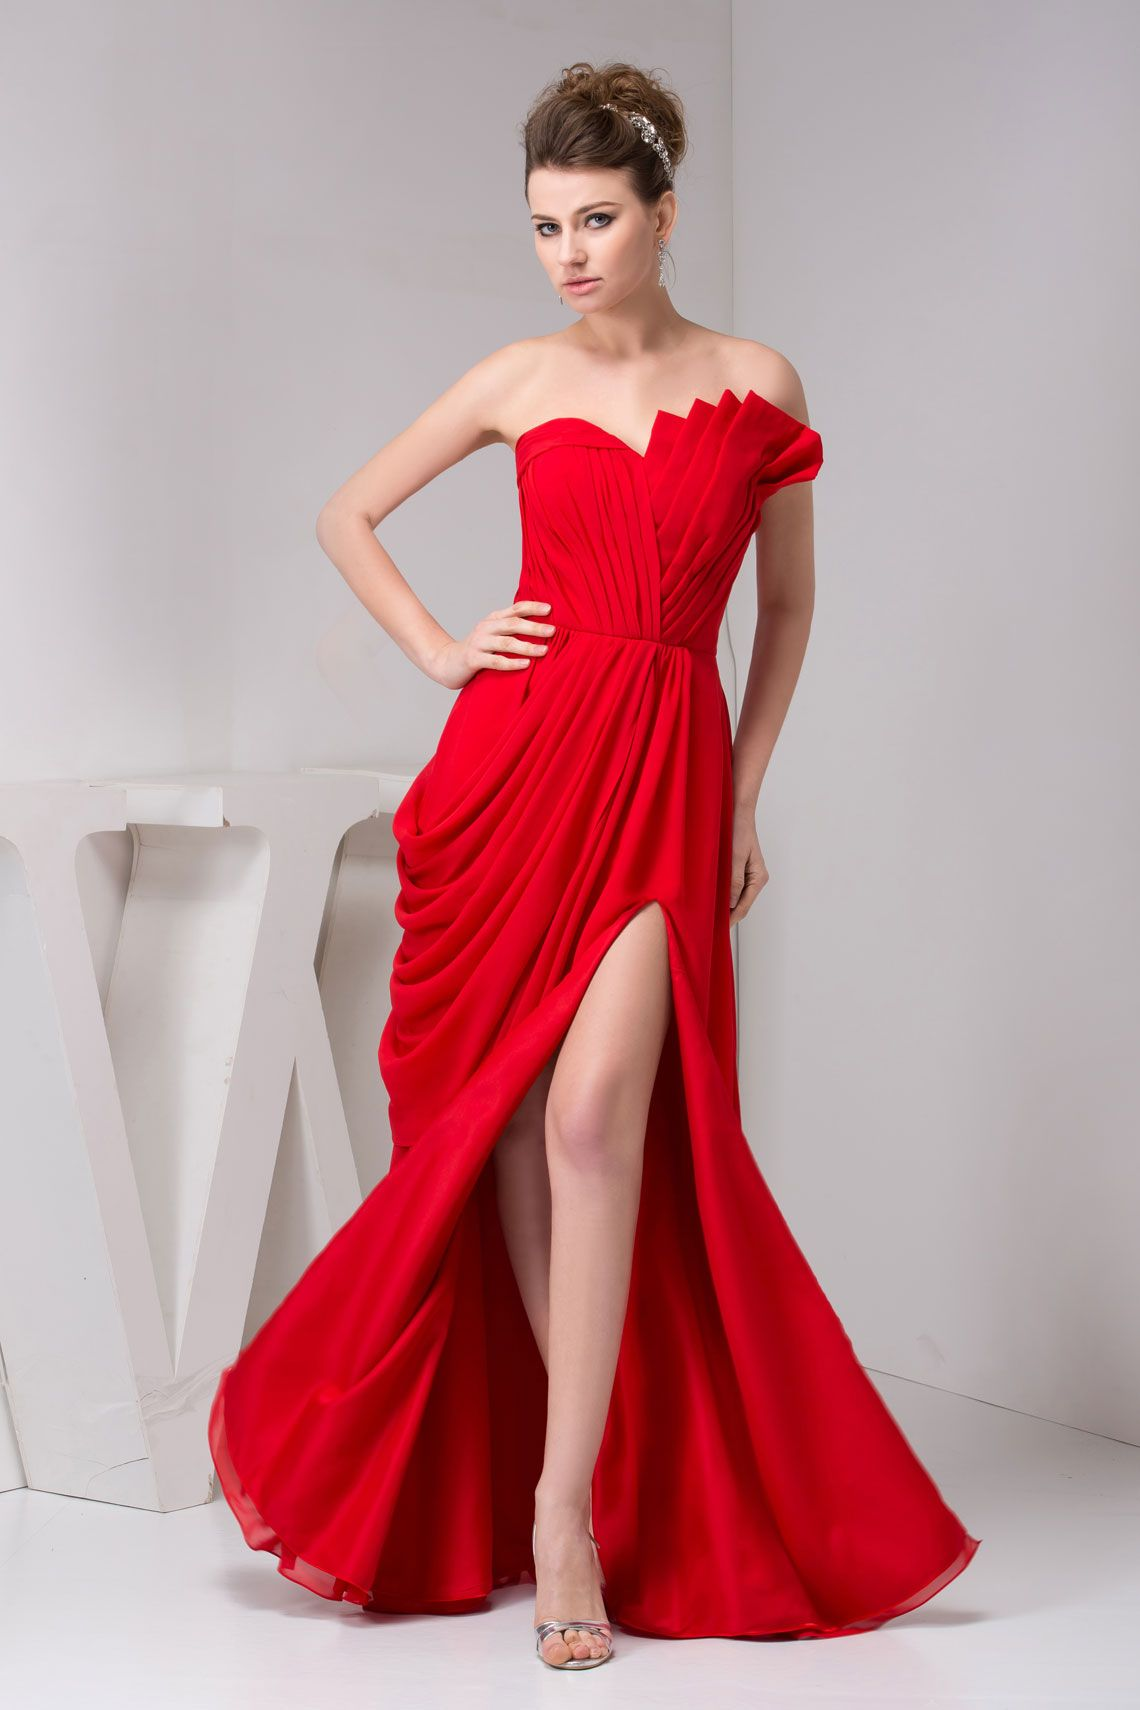 35++ Red wedding guest outfits info